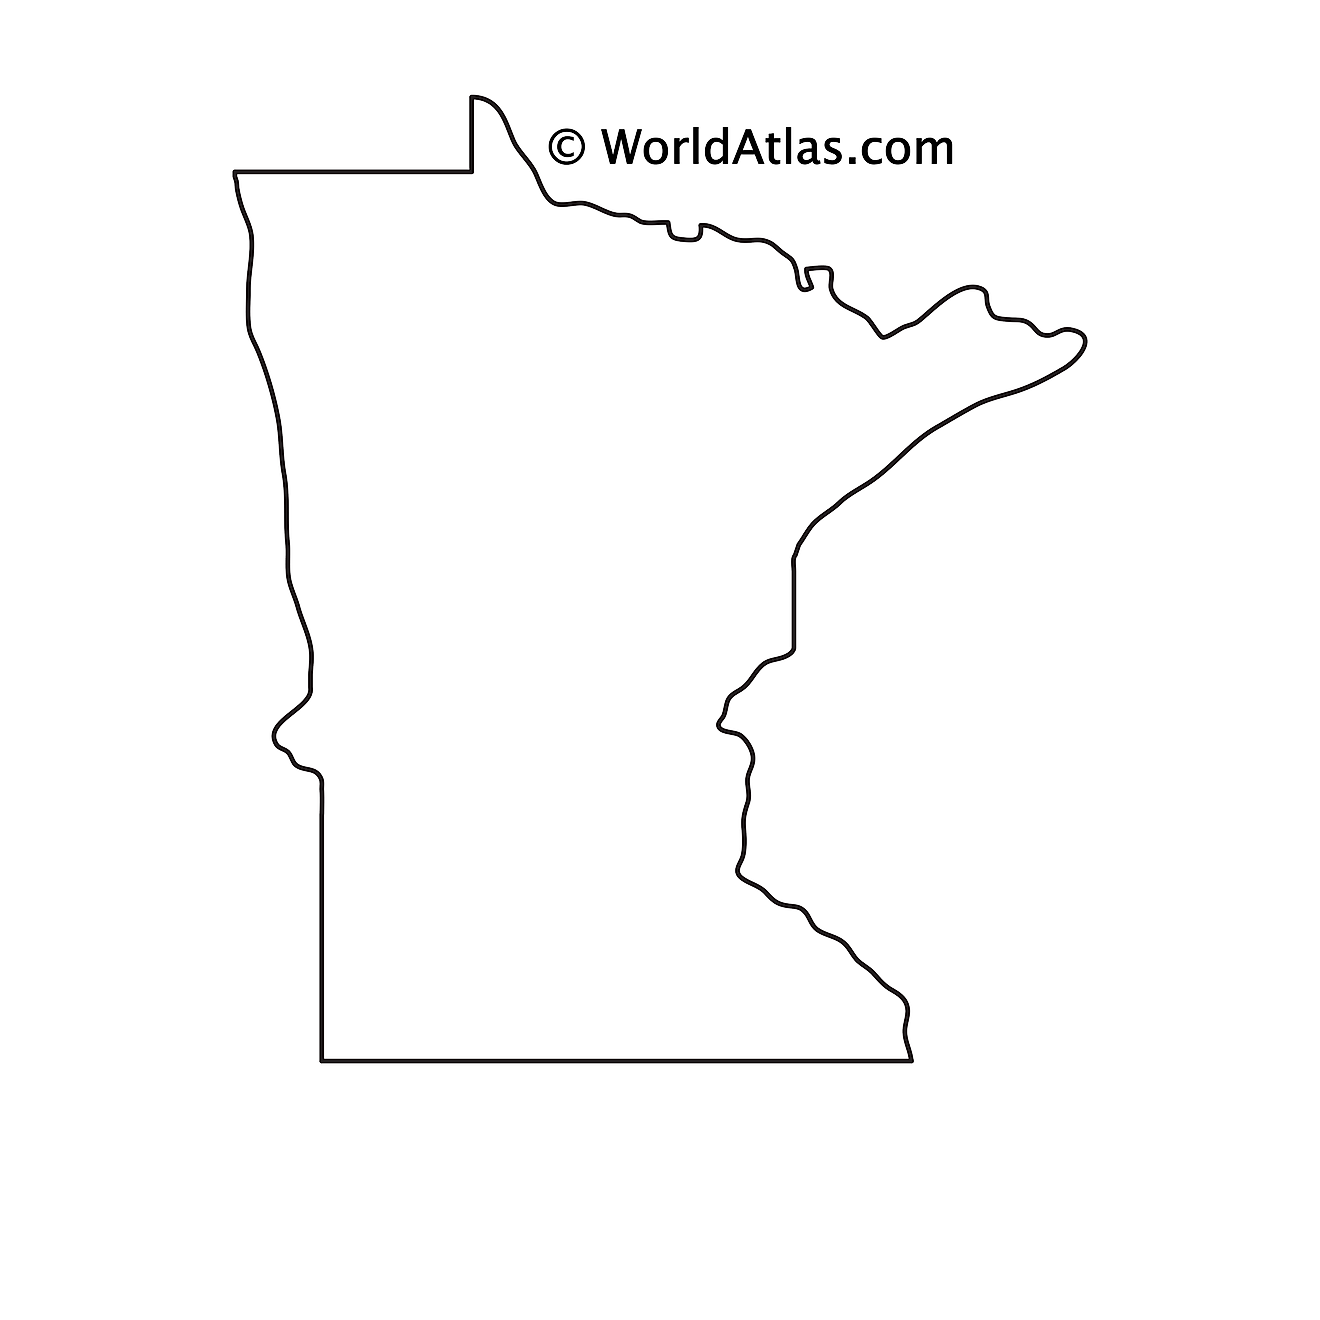 Blank Outline Map of Minnesota